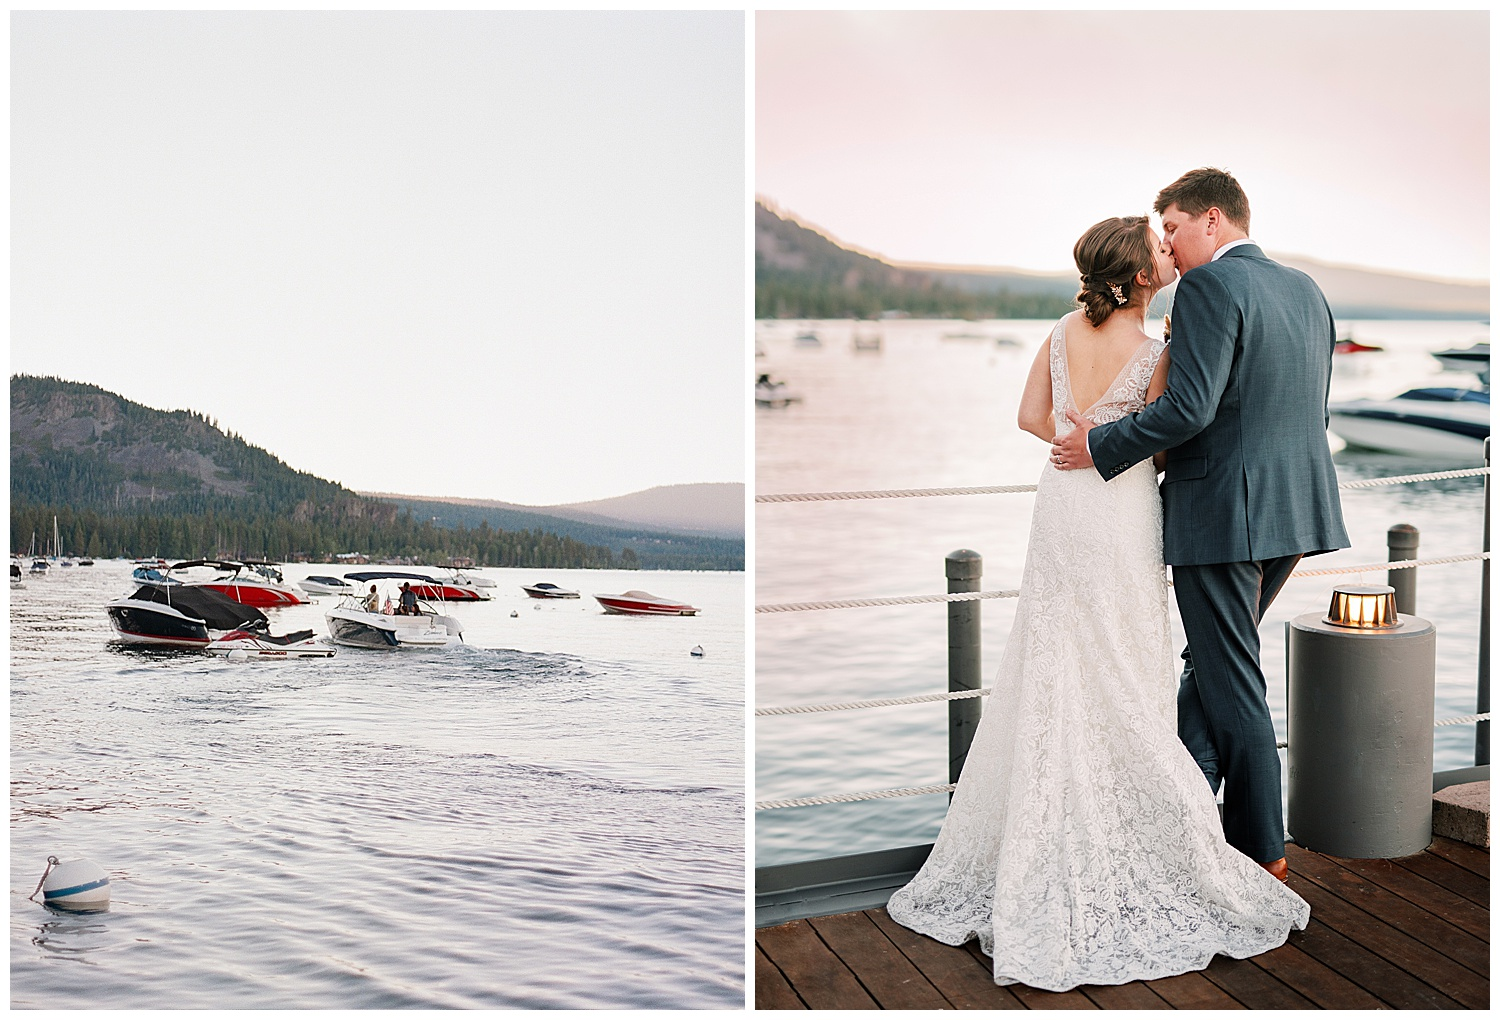 Janine_Licare_Photography_San_Francisco_Wedding_Photographer_Lake_Tahoe_West_Shore_Cafe_Colorful_Summer_0054.jpg